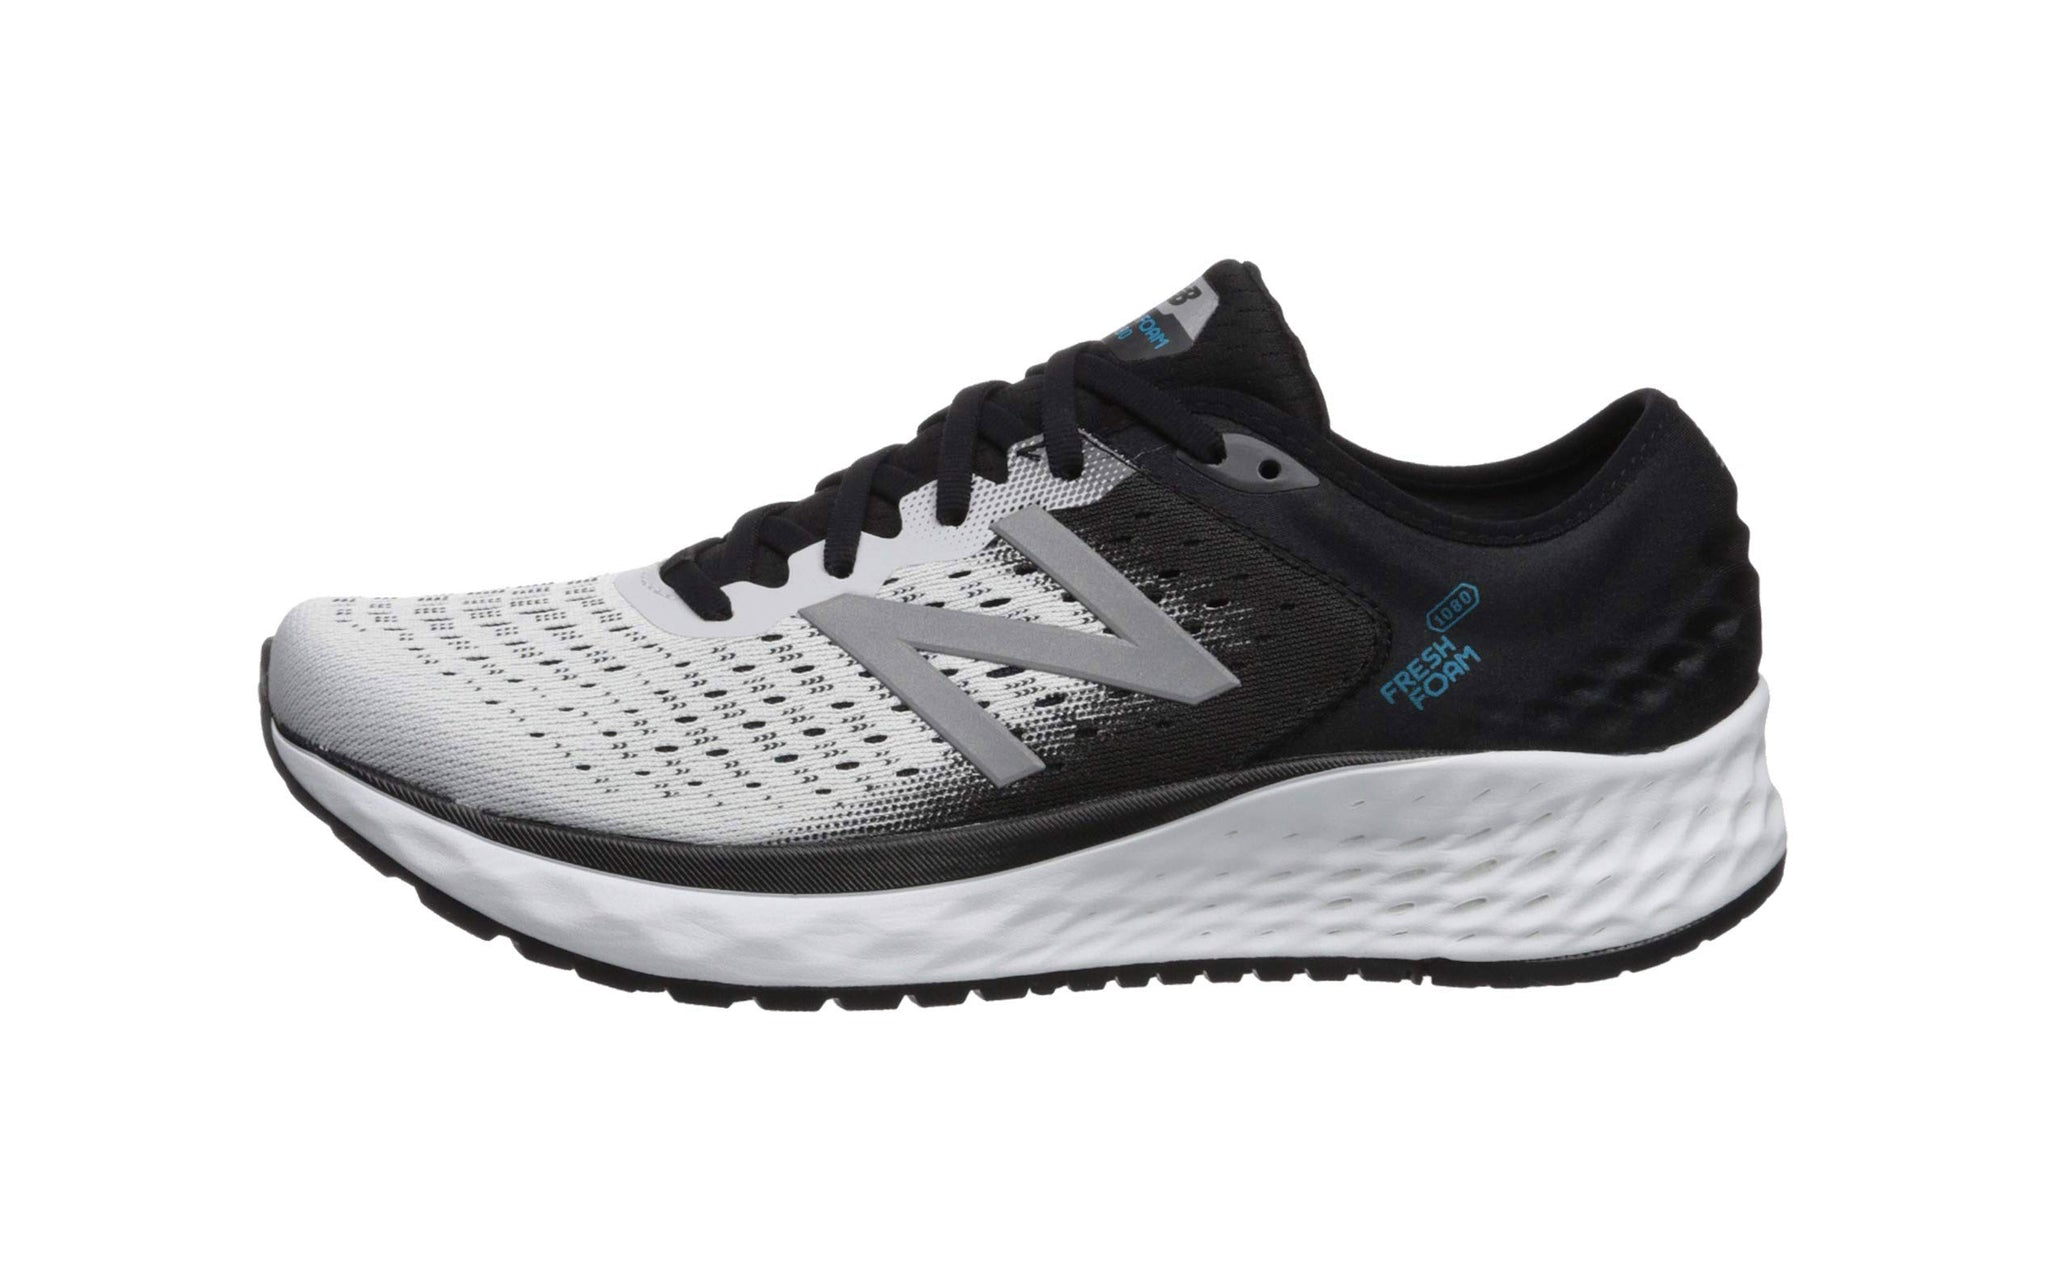 New Balance 1080 Gray/Black/White Men's Shoes